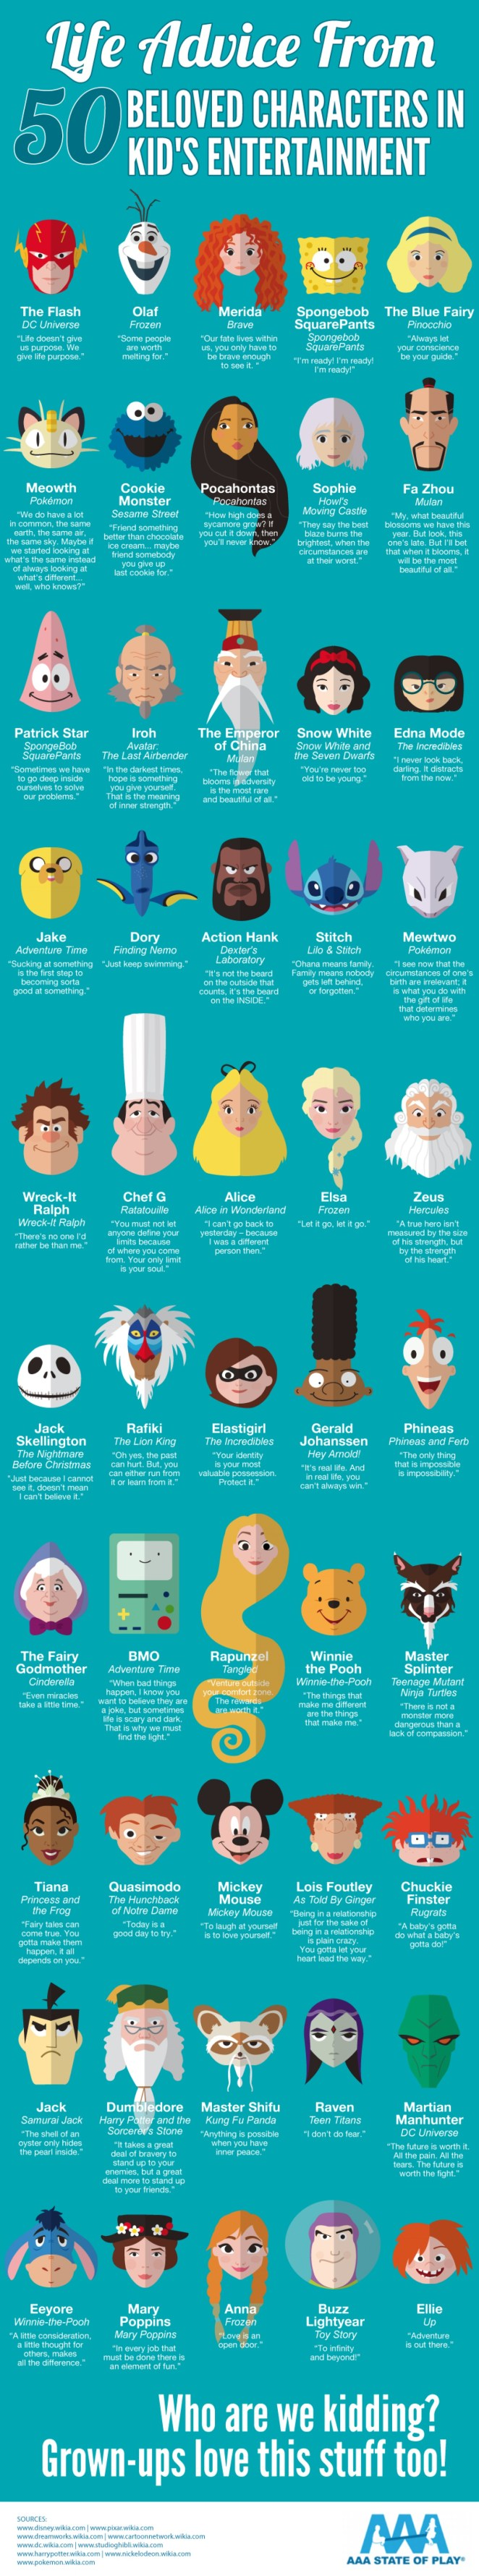 Inspirational-Quotes-From-Famous-Cartoon-Characters